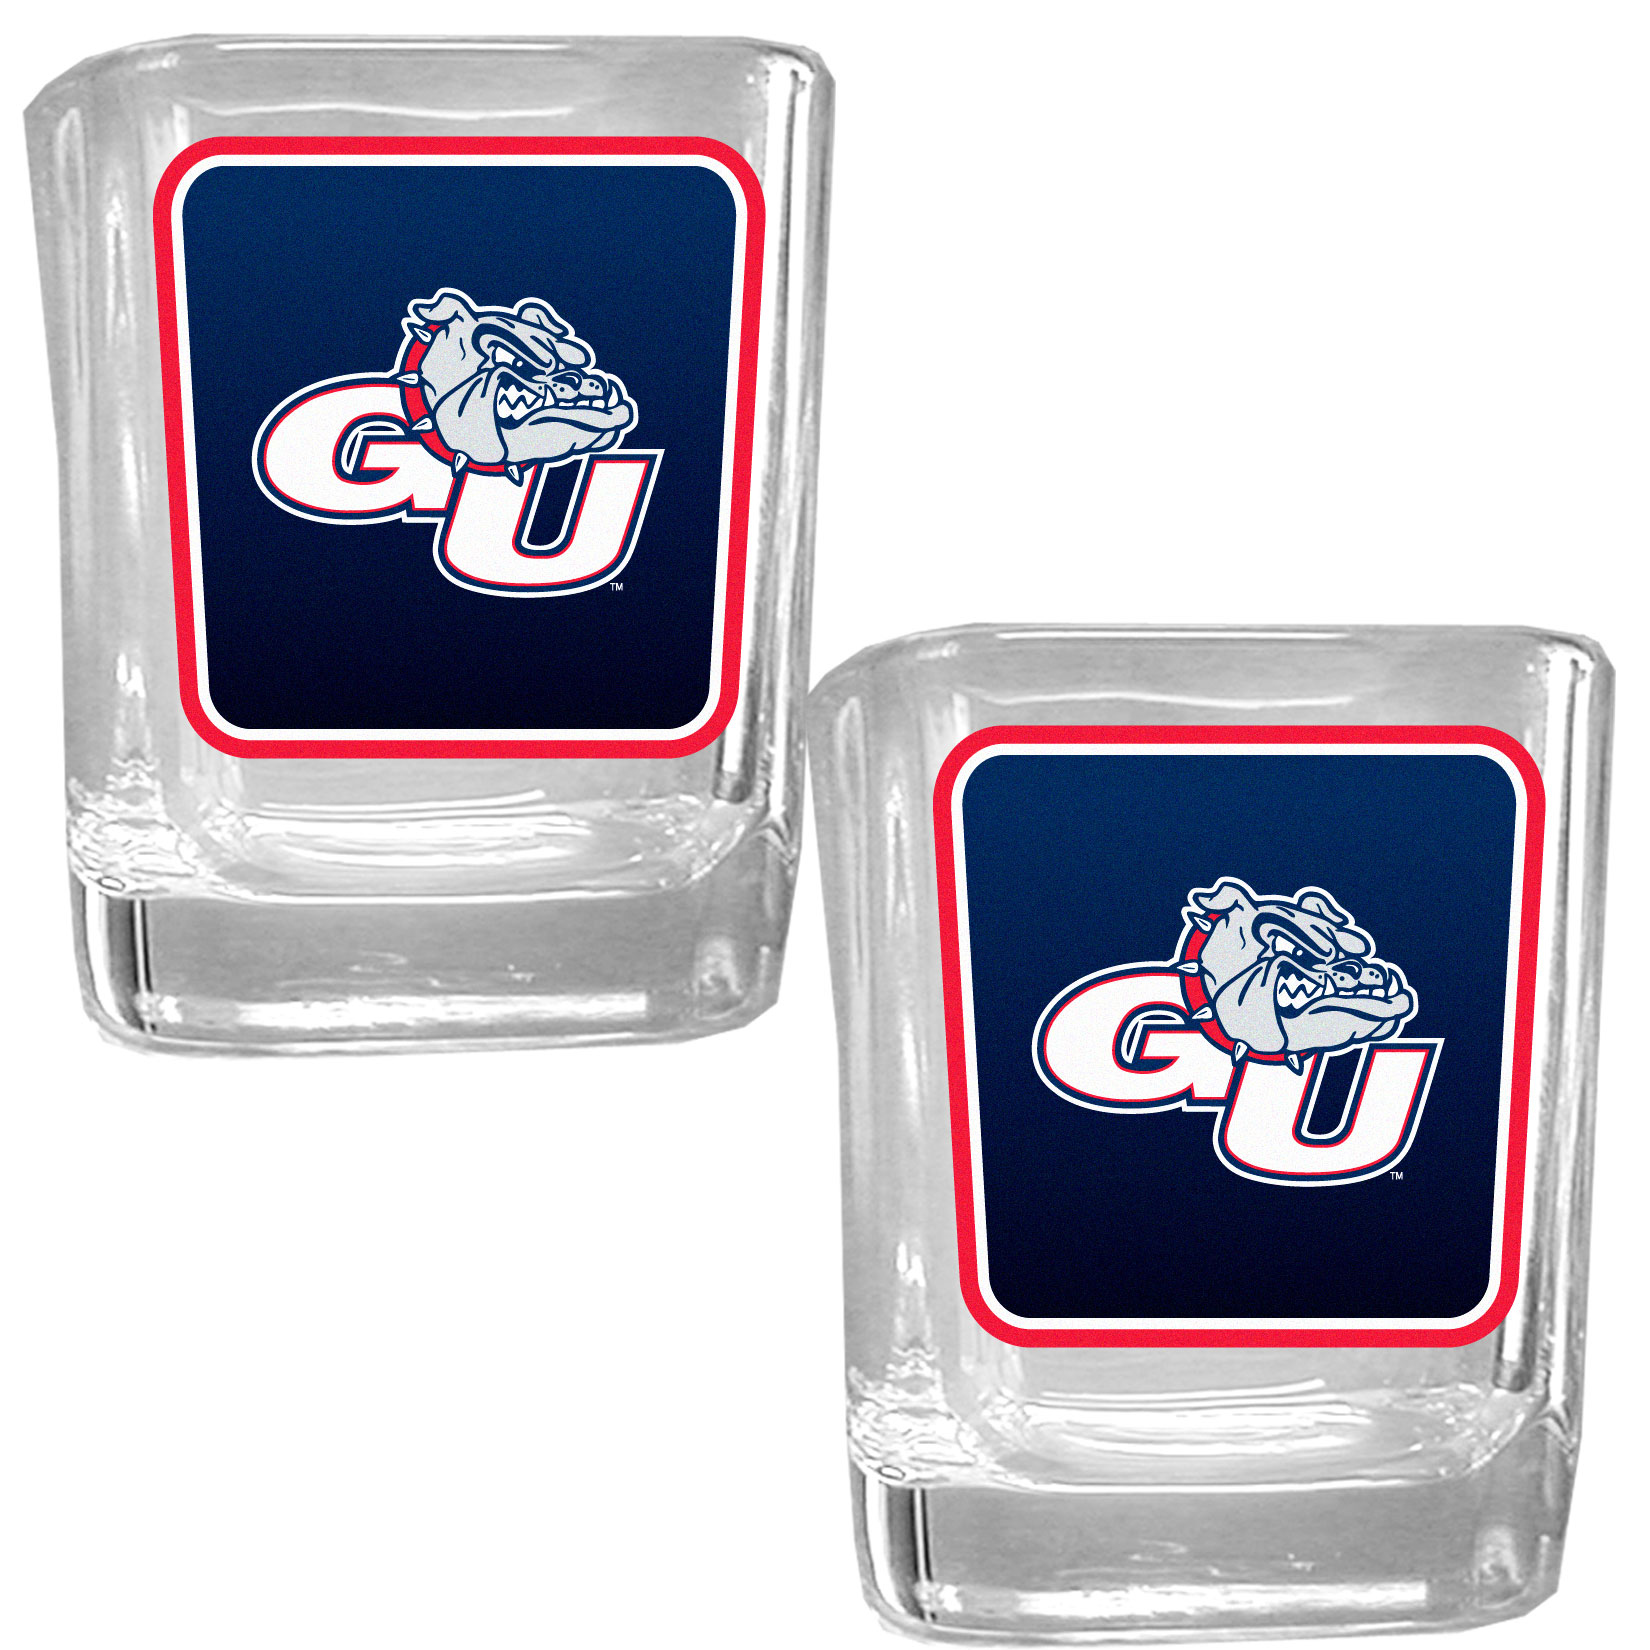 Gonzaga Bulldogs Square Glass Shot Glass Set - Our glass shot glasses are perfect for collectors or any game day event. The 2 ounce glasses feature bright, vidid digital Gonzaga Bulldogs graphics. Comes in a set of 2.